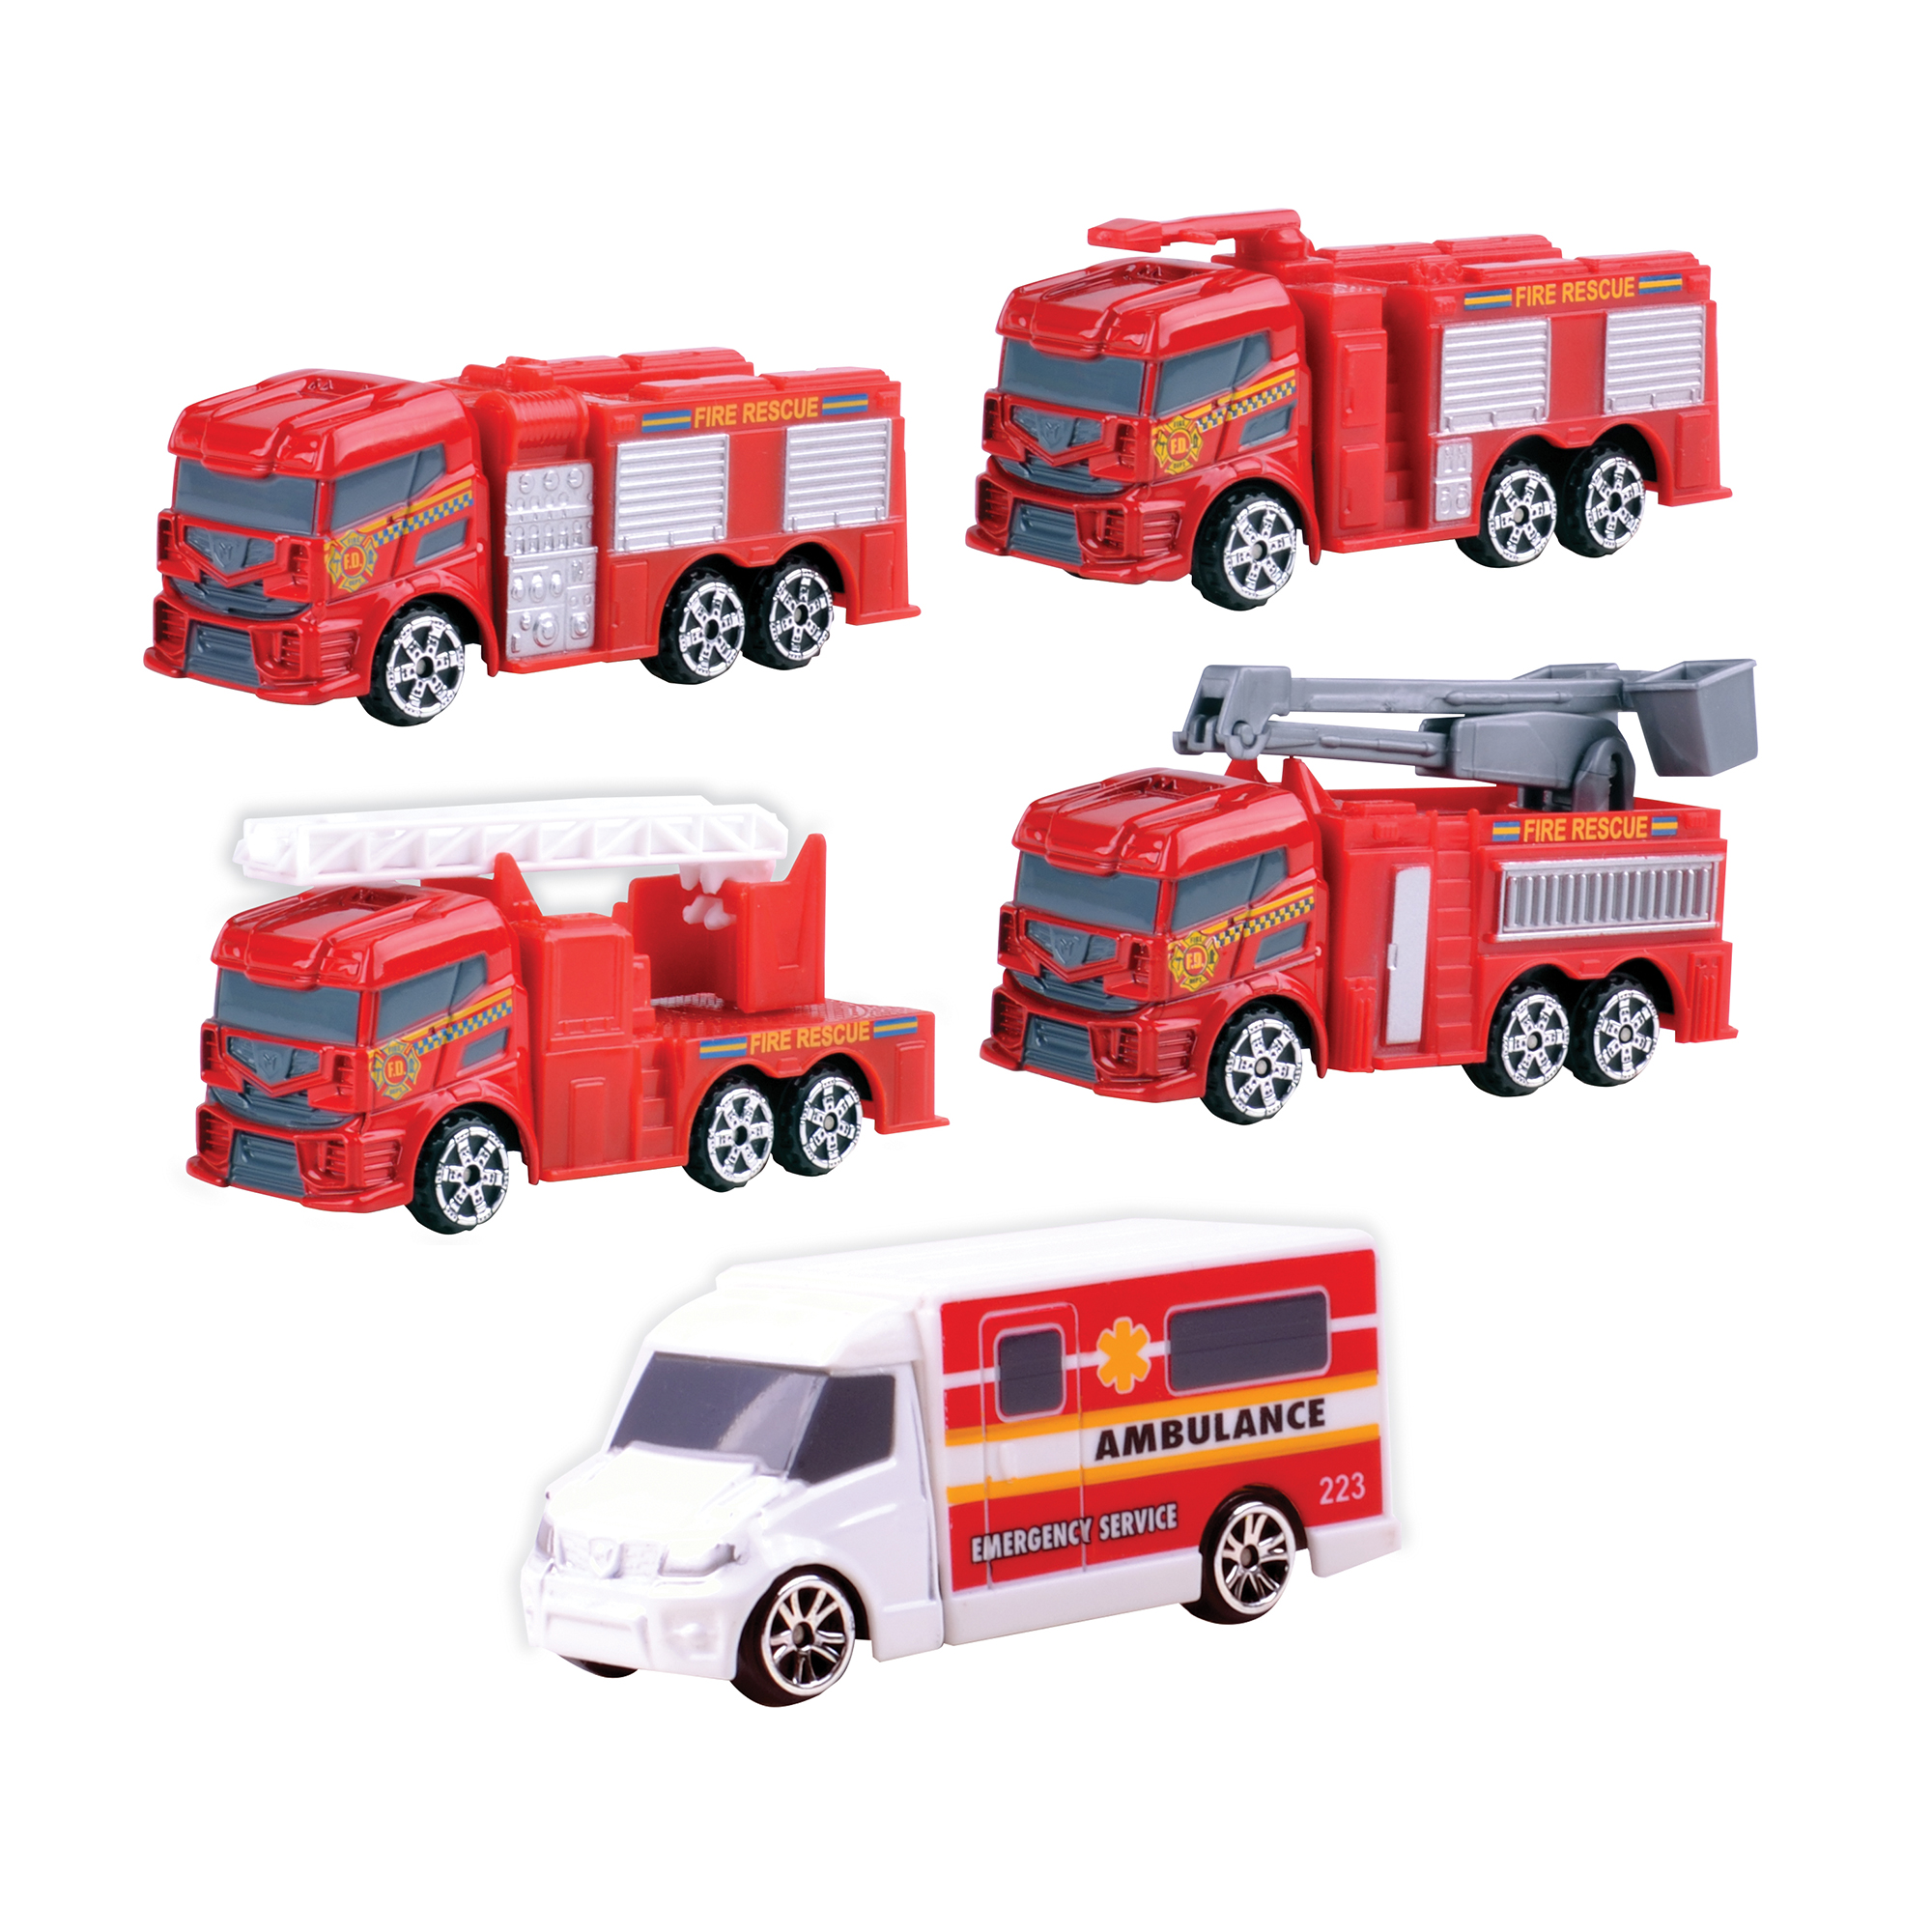 Driving Force 5-Piece Emergency Vehicle Set